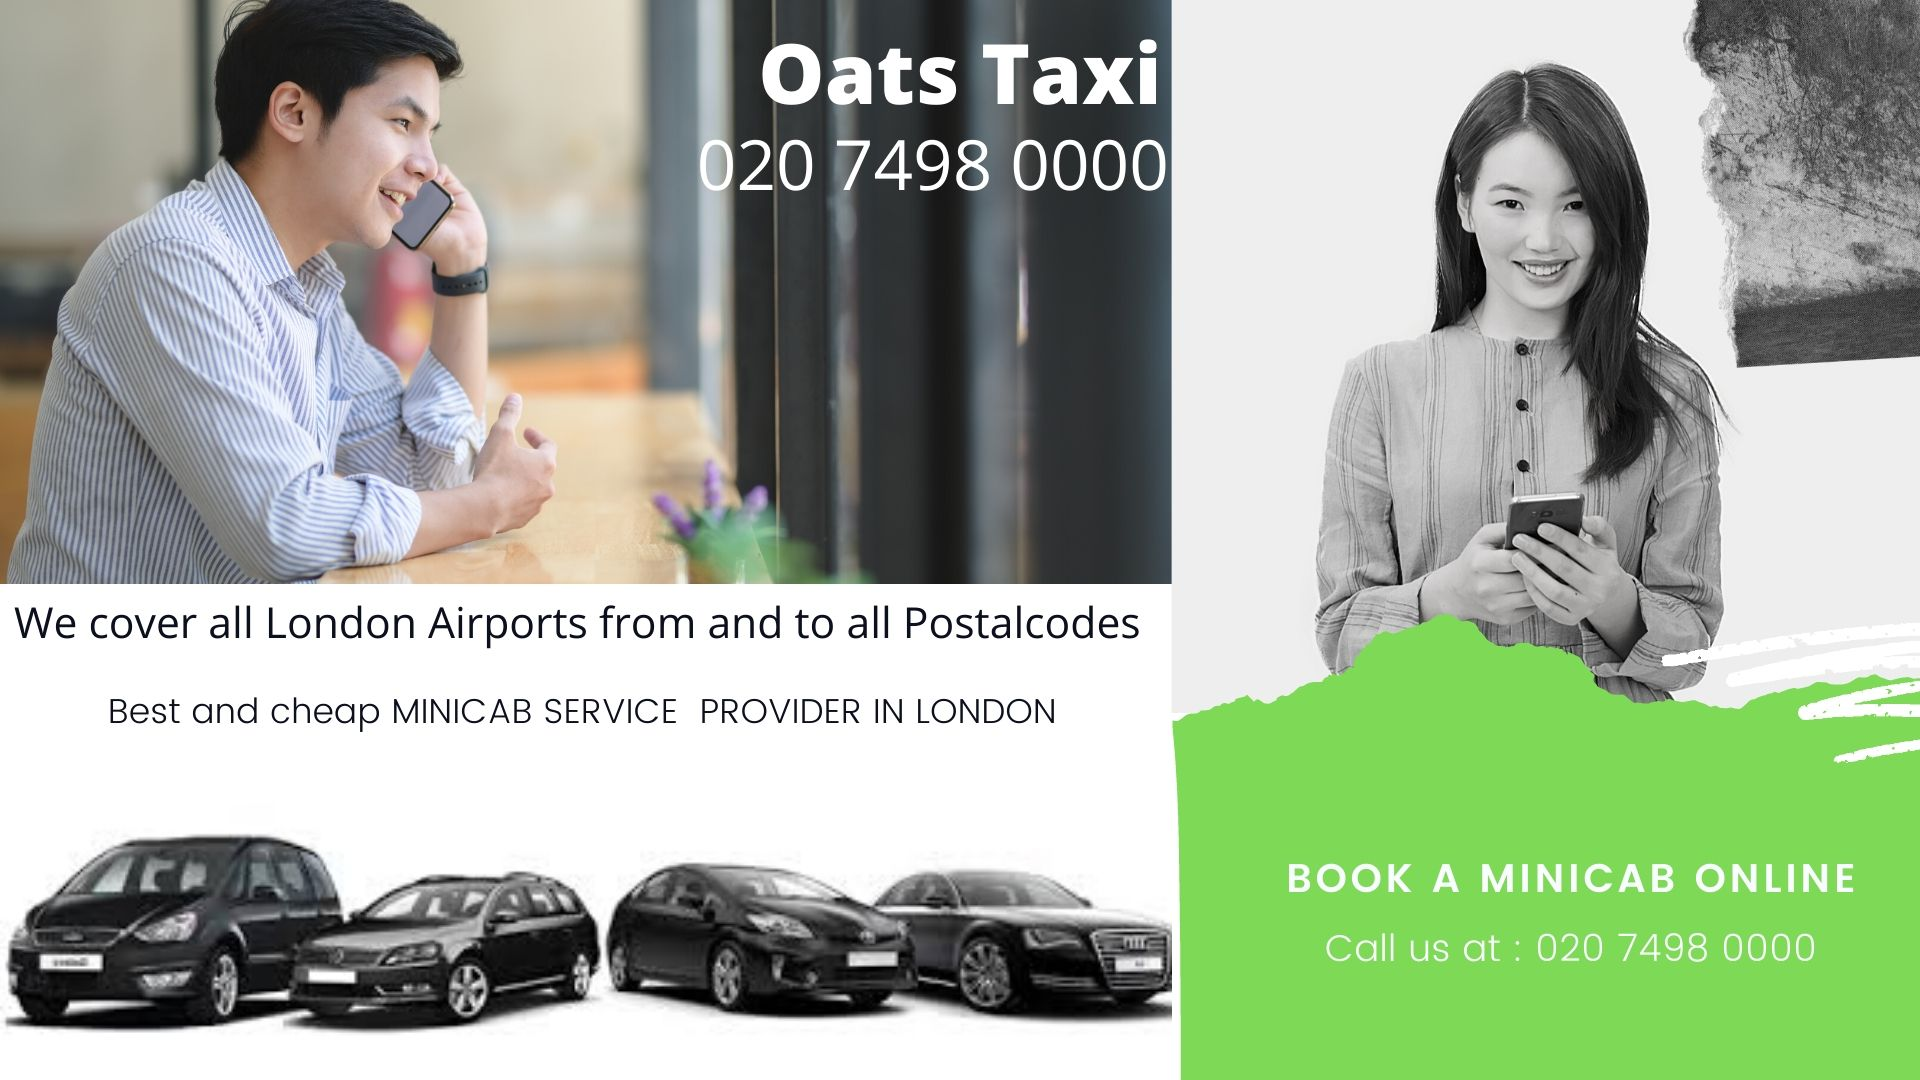 Minicab Office Near HEATHWALL STREET, Battersea SW11, Minicab From Battersea SW11 To Gatwick Airport